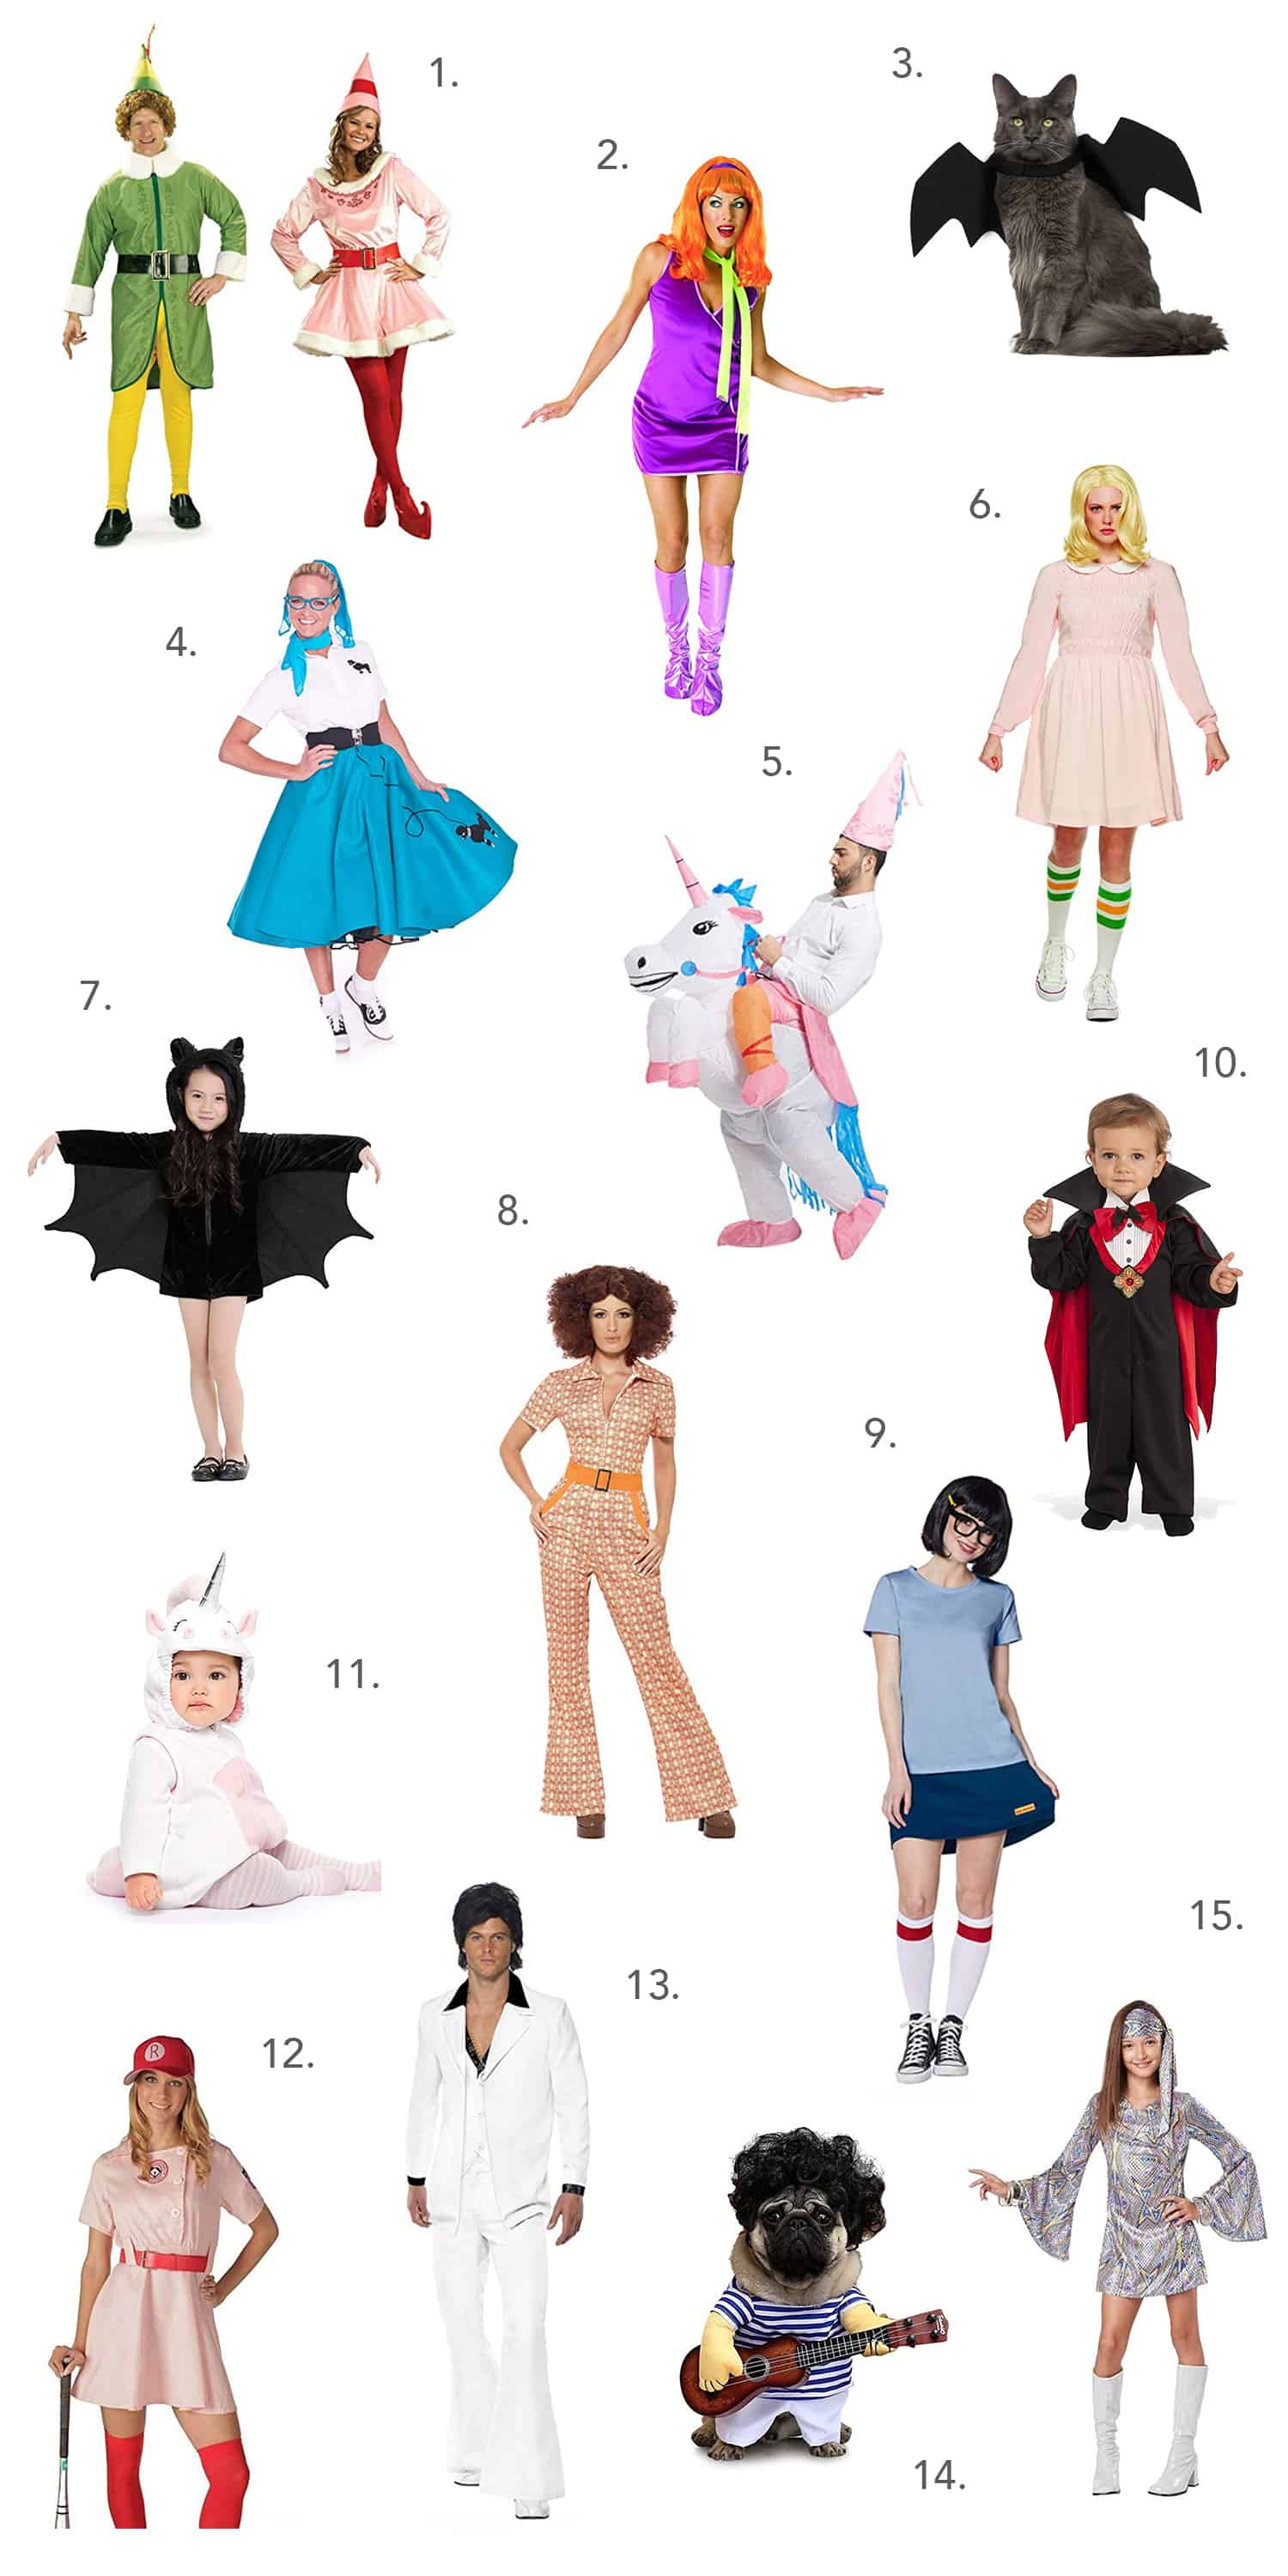 Amazon Prime Halloween Costumes.The Best Last Minute Costumes On Amazon Prime A Beautiful Mess